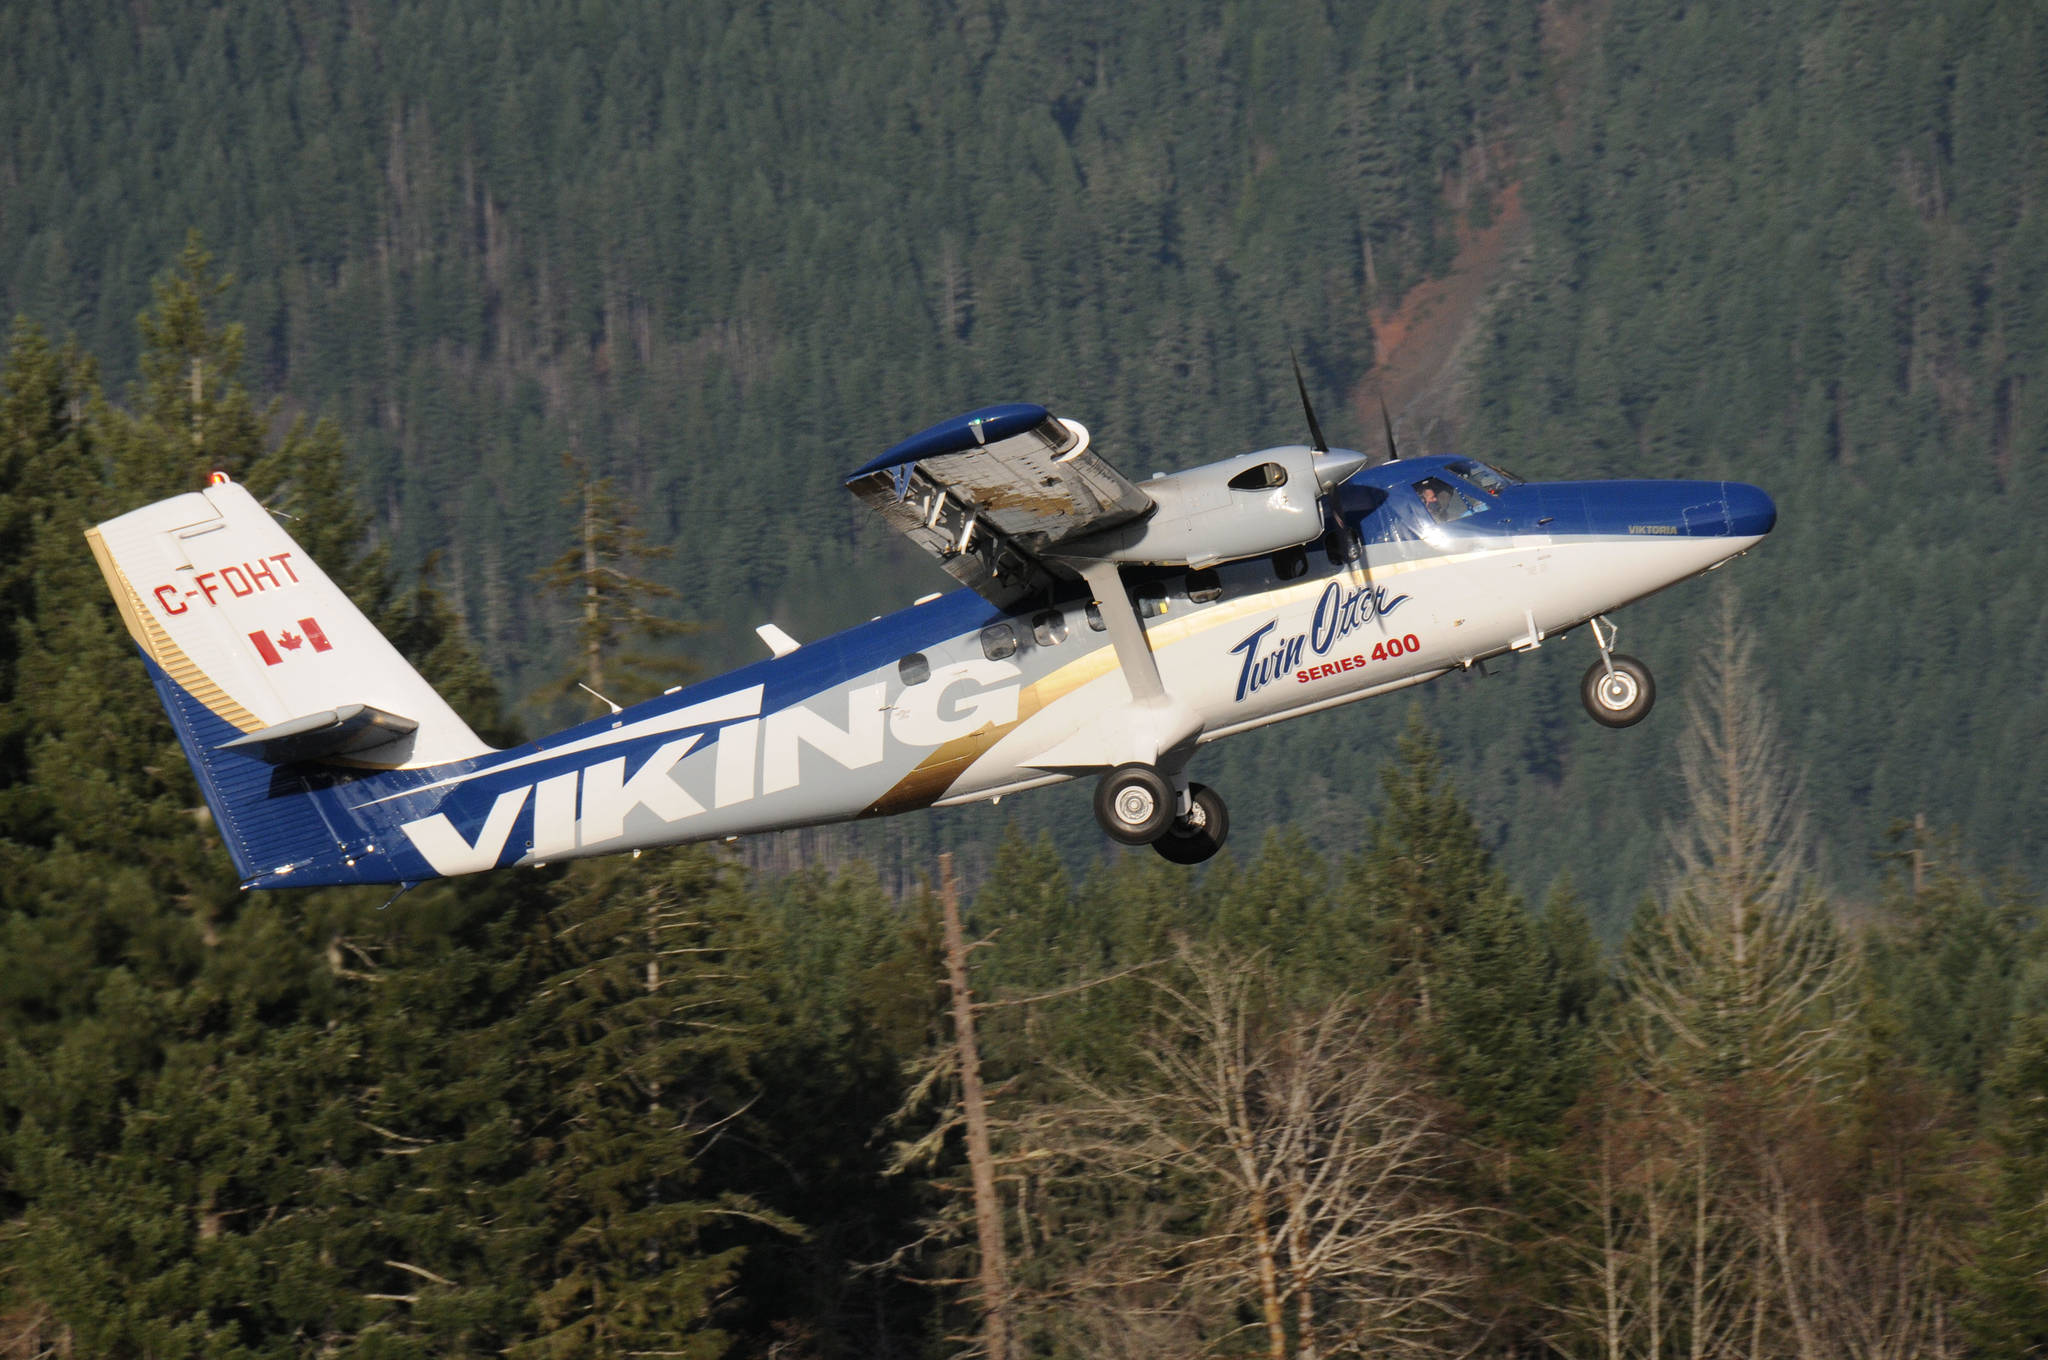 A Viking Air Twin Otter takes off on Runway 12 midway through a day of test flights on Jan. 13, 2021 at the Alberni Valley Regional Airport. Viking Air is located in Victoria. (SUSAN QUINN/ Alberni Valley News)